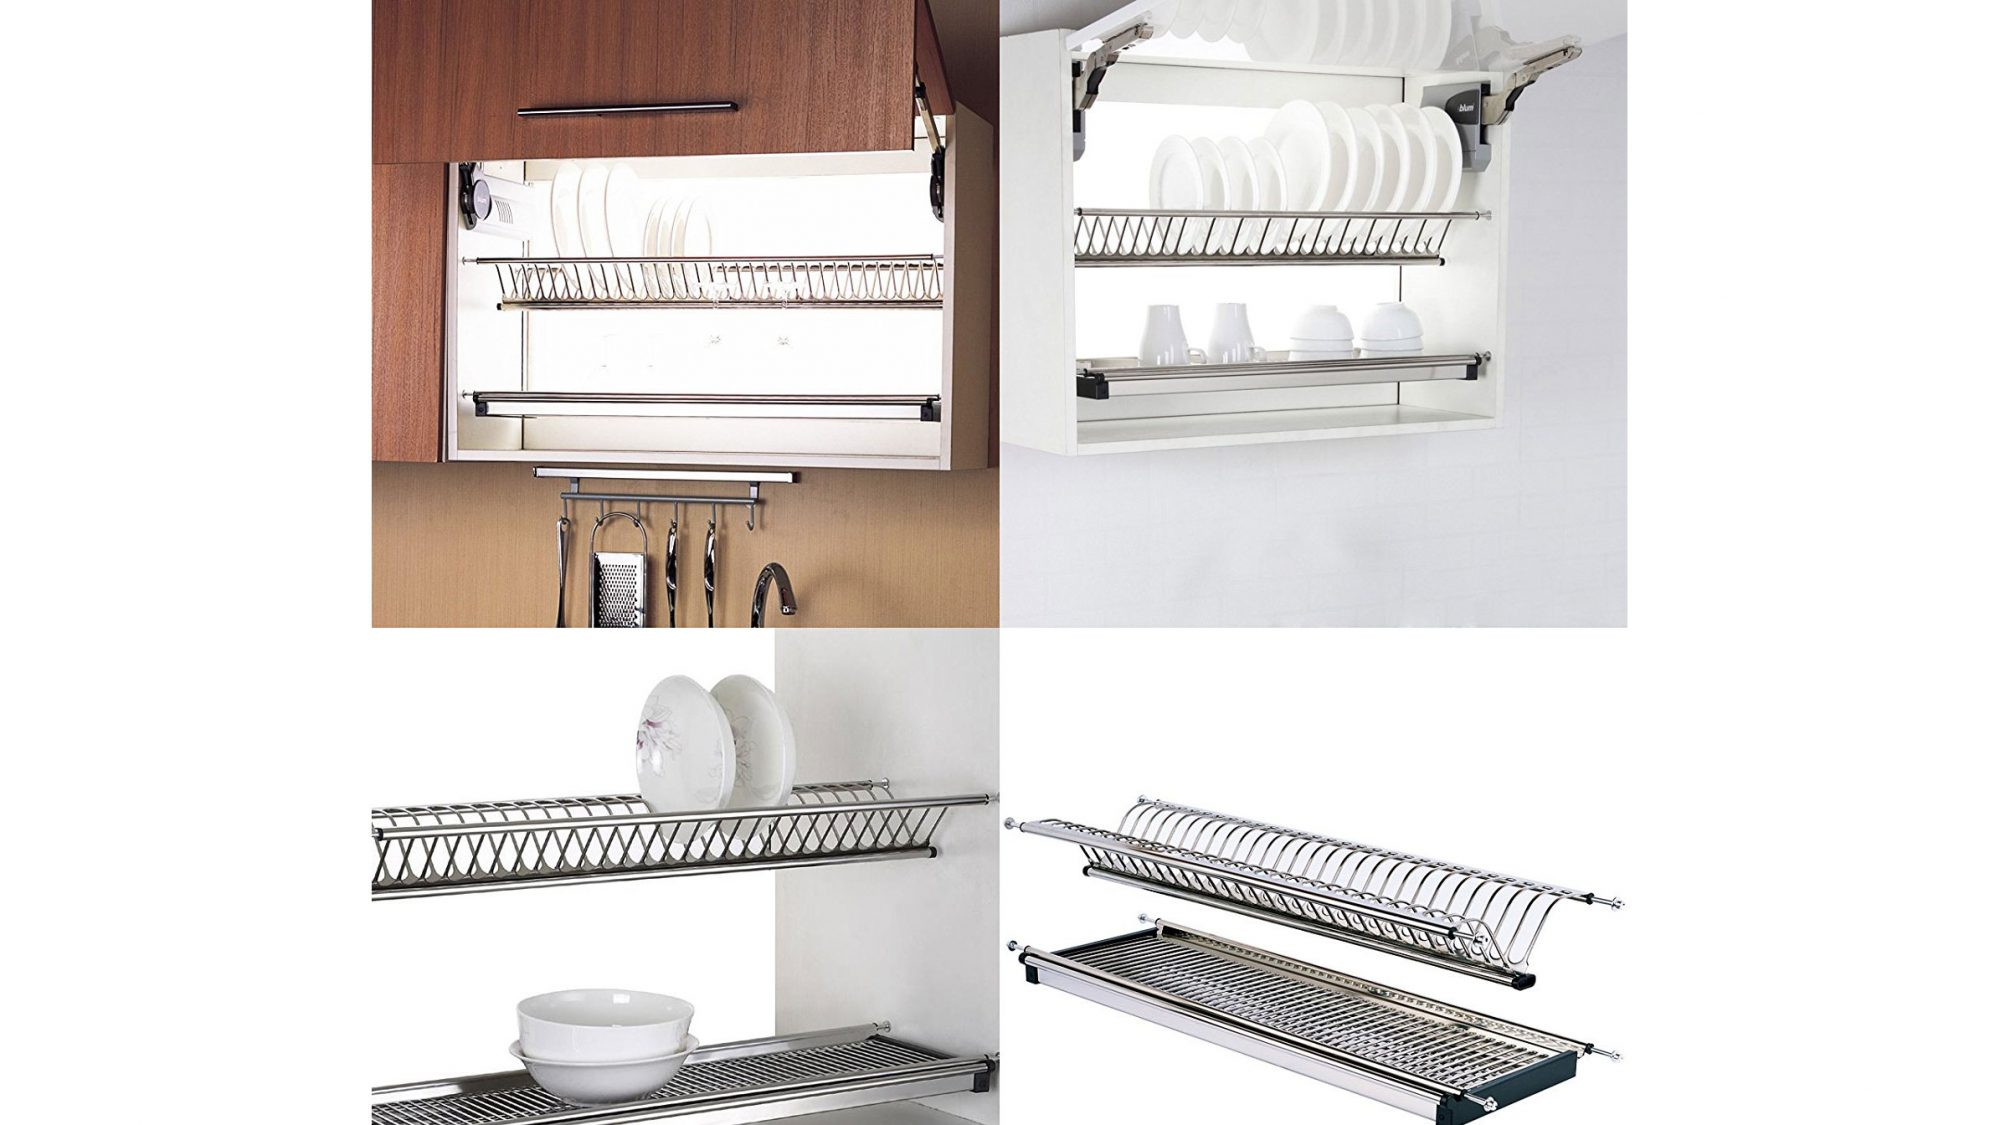 Probrico Stainless Steel Dish Drying Rack